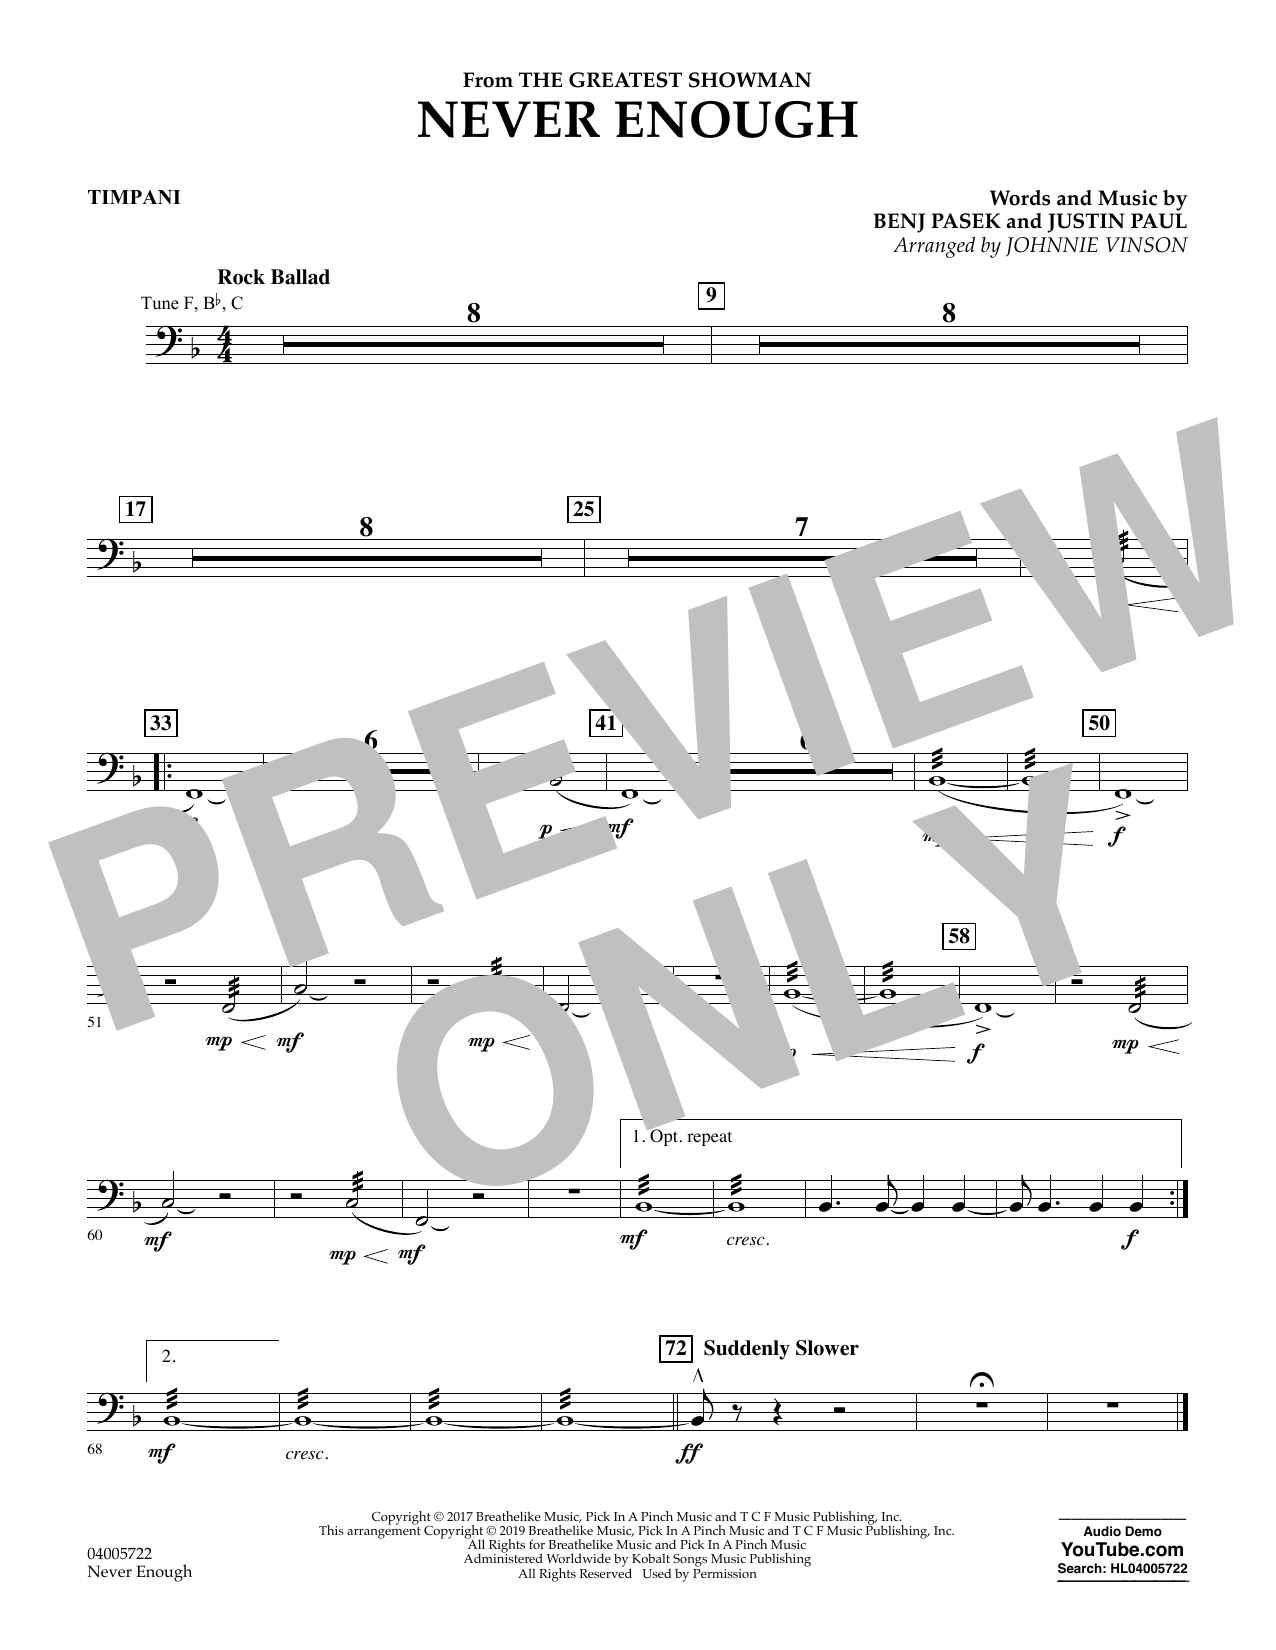 Never Enough (from The Greatest Showman) (arr. Johnnie Vinson) - Timpani (Concert Band)